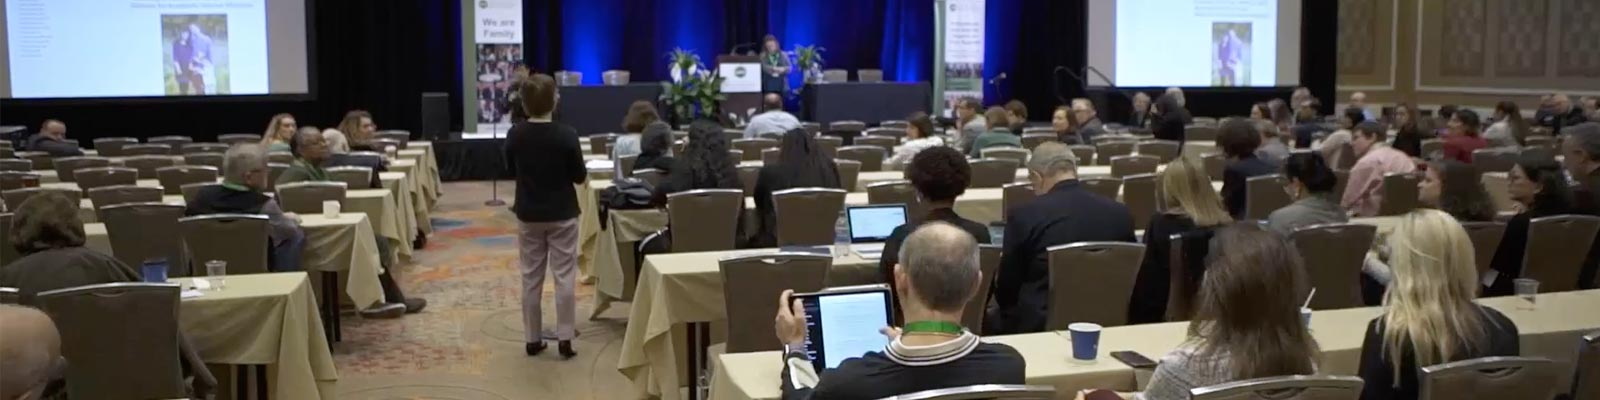 People attend a conference in a large hall